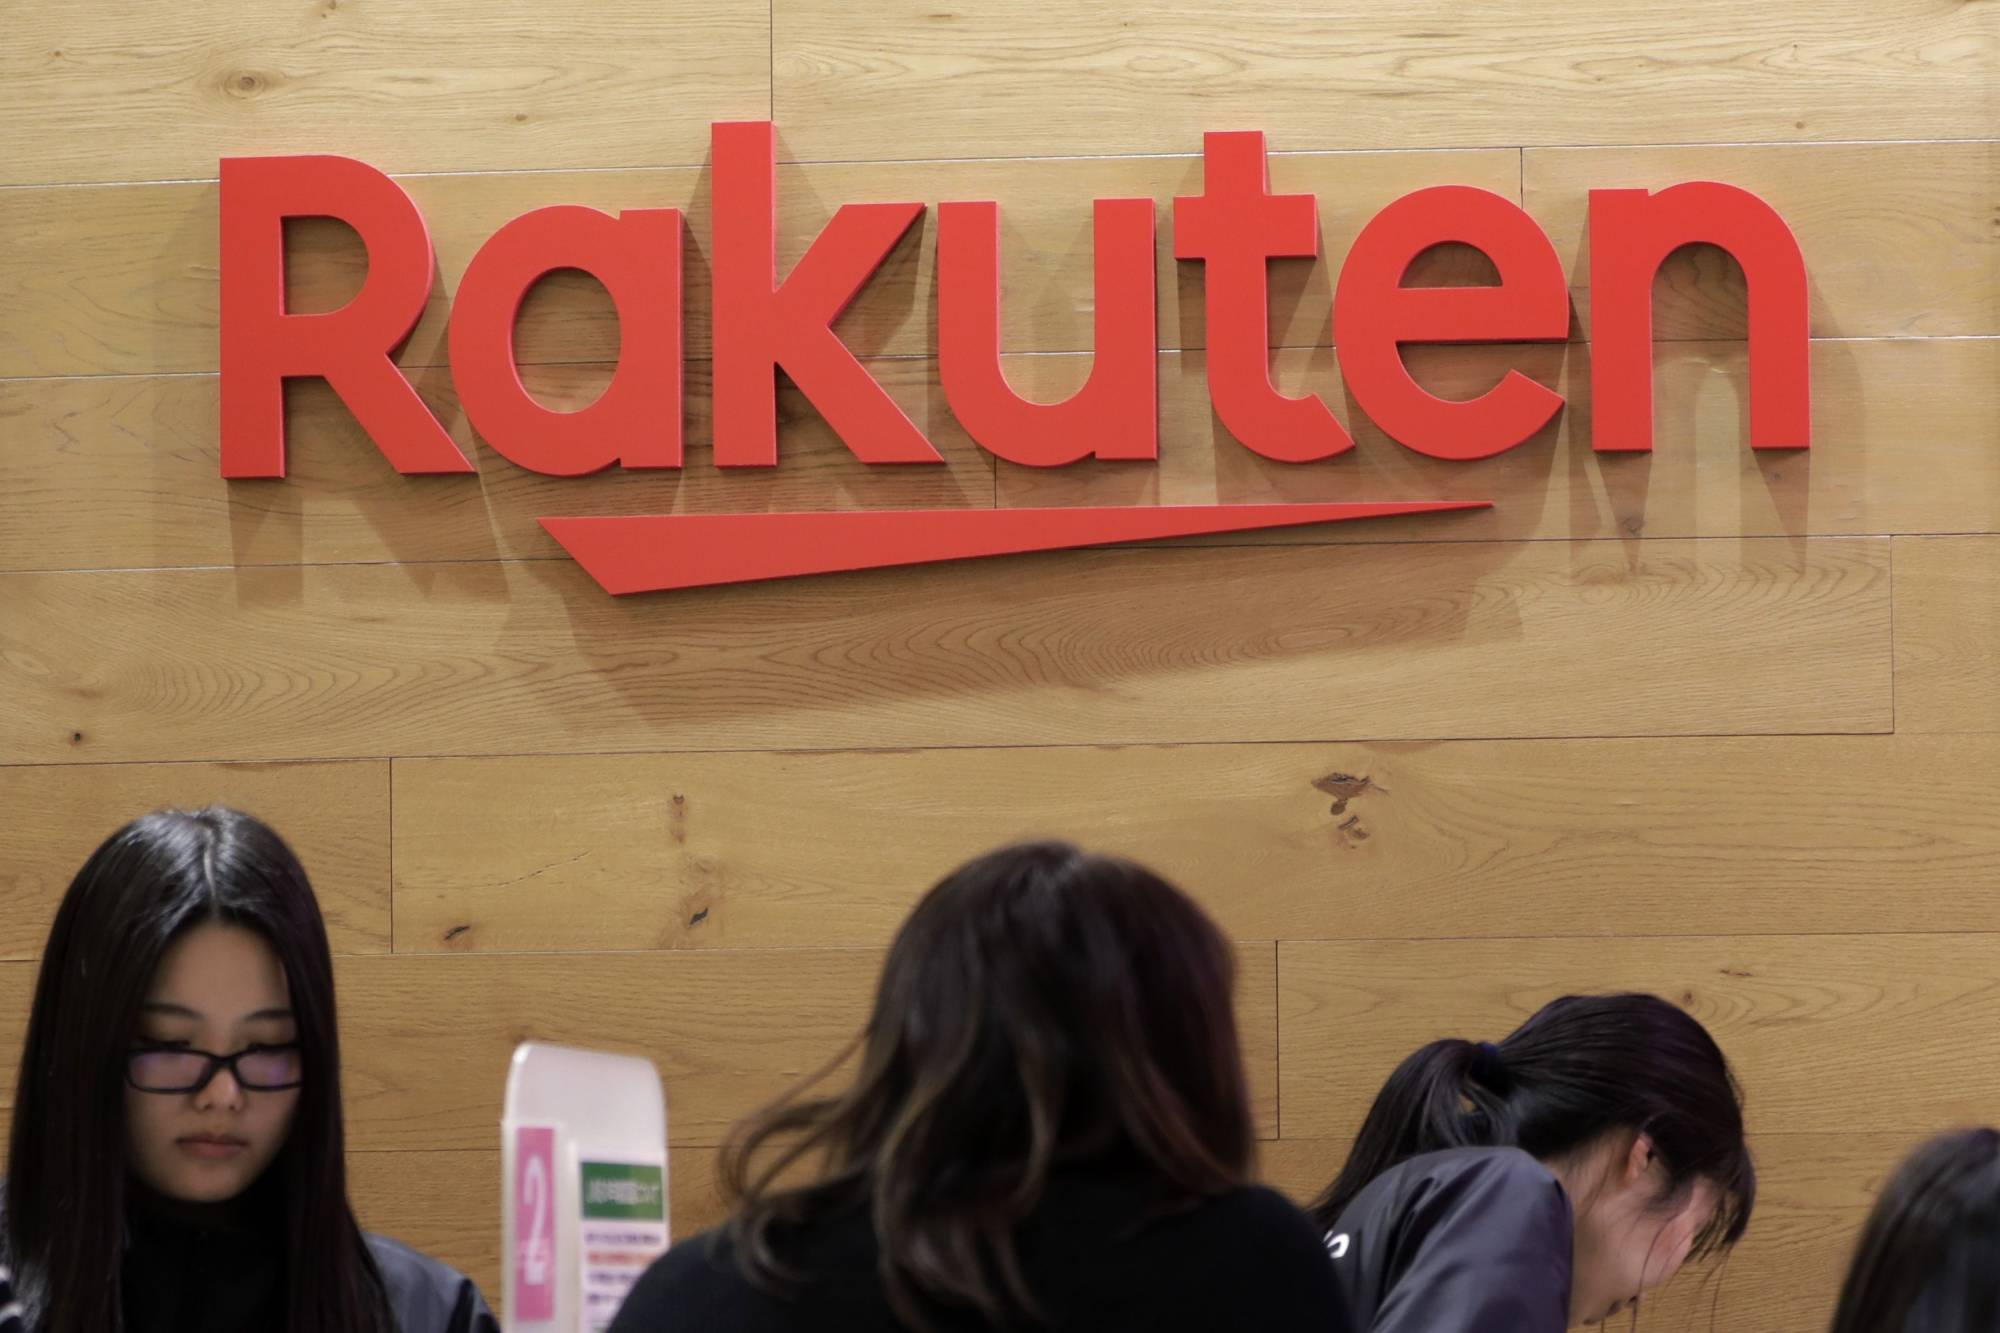 A group company of Chinese tech giant Tencent Holdings Ltd. has become Rakuten Group Inc.'s major shareholder, apparently raising alarm among Japanese and U.S. authorities for national security reasons. | BLOOMBERG